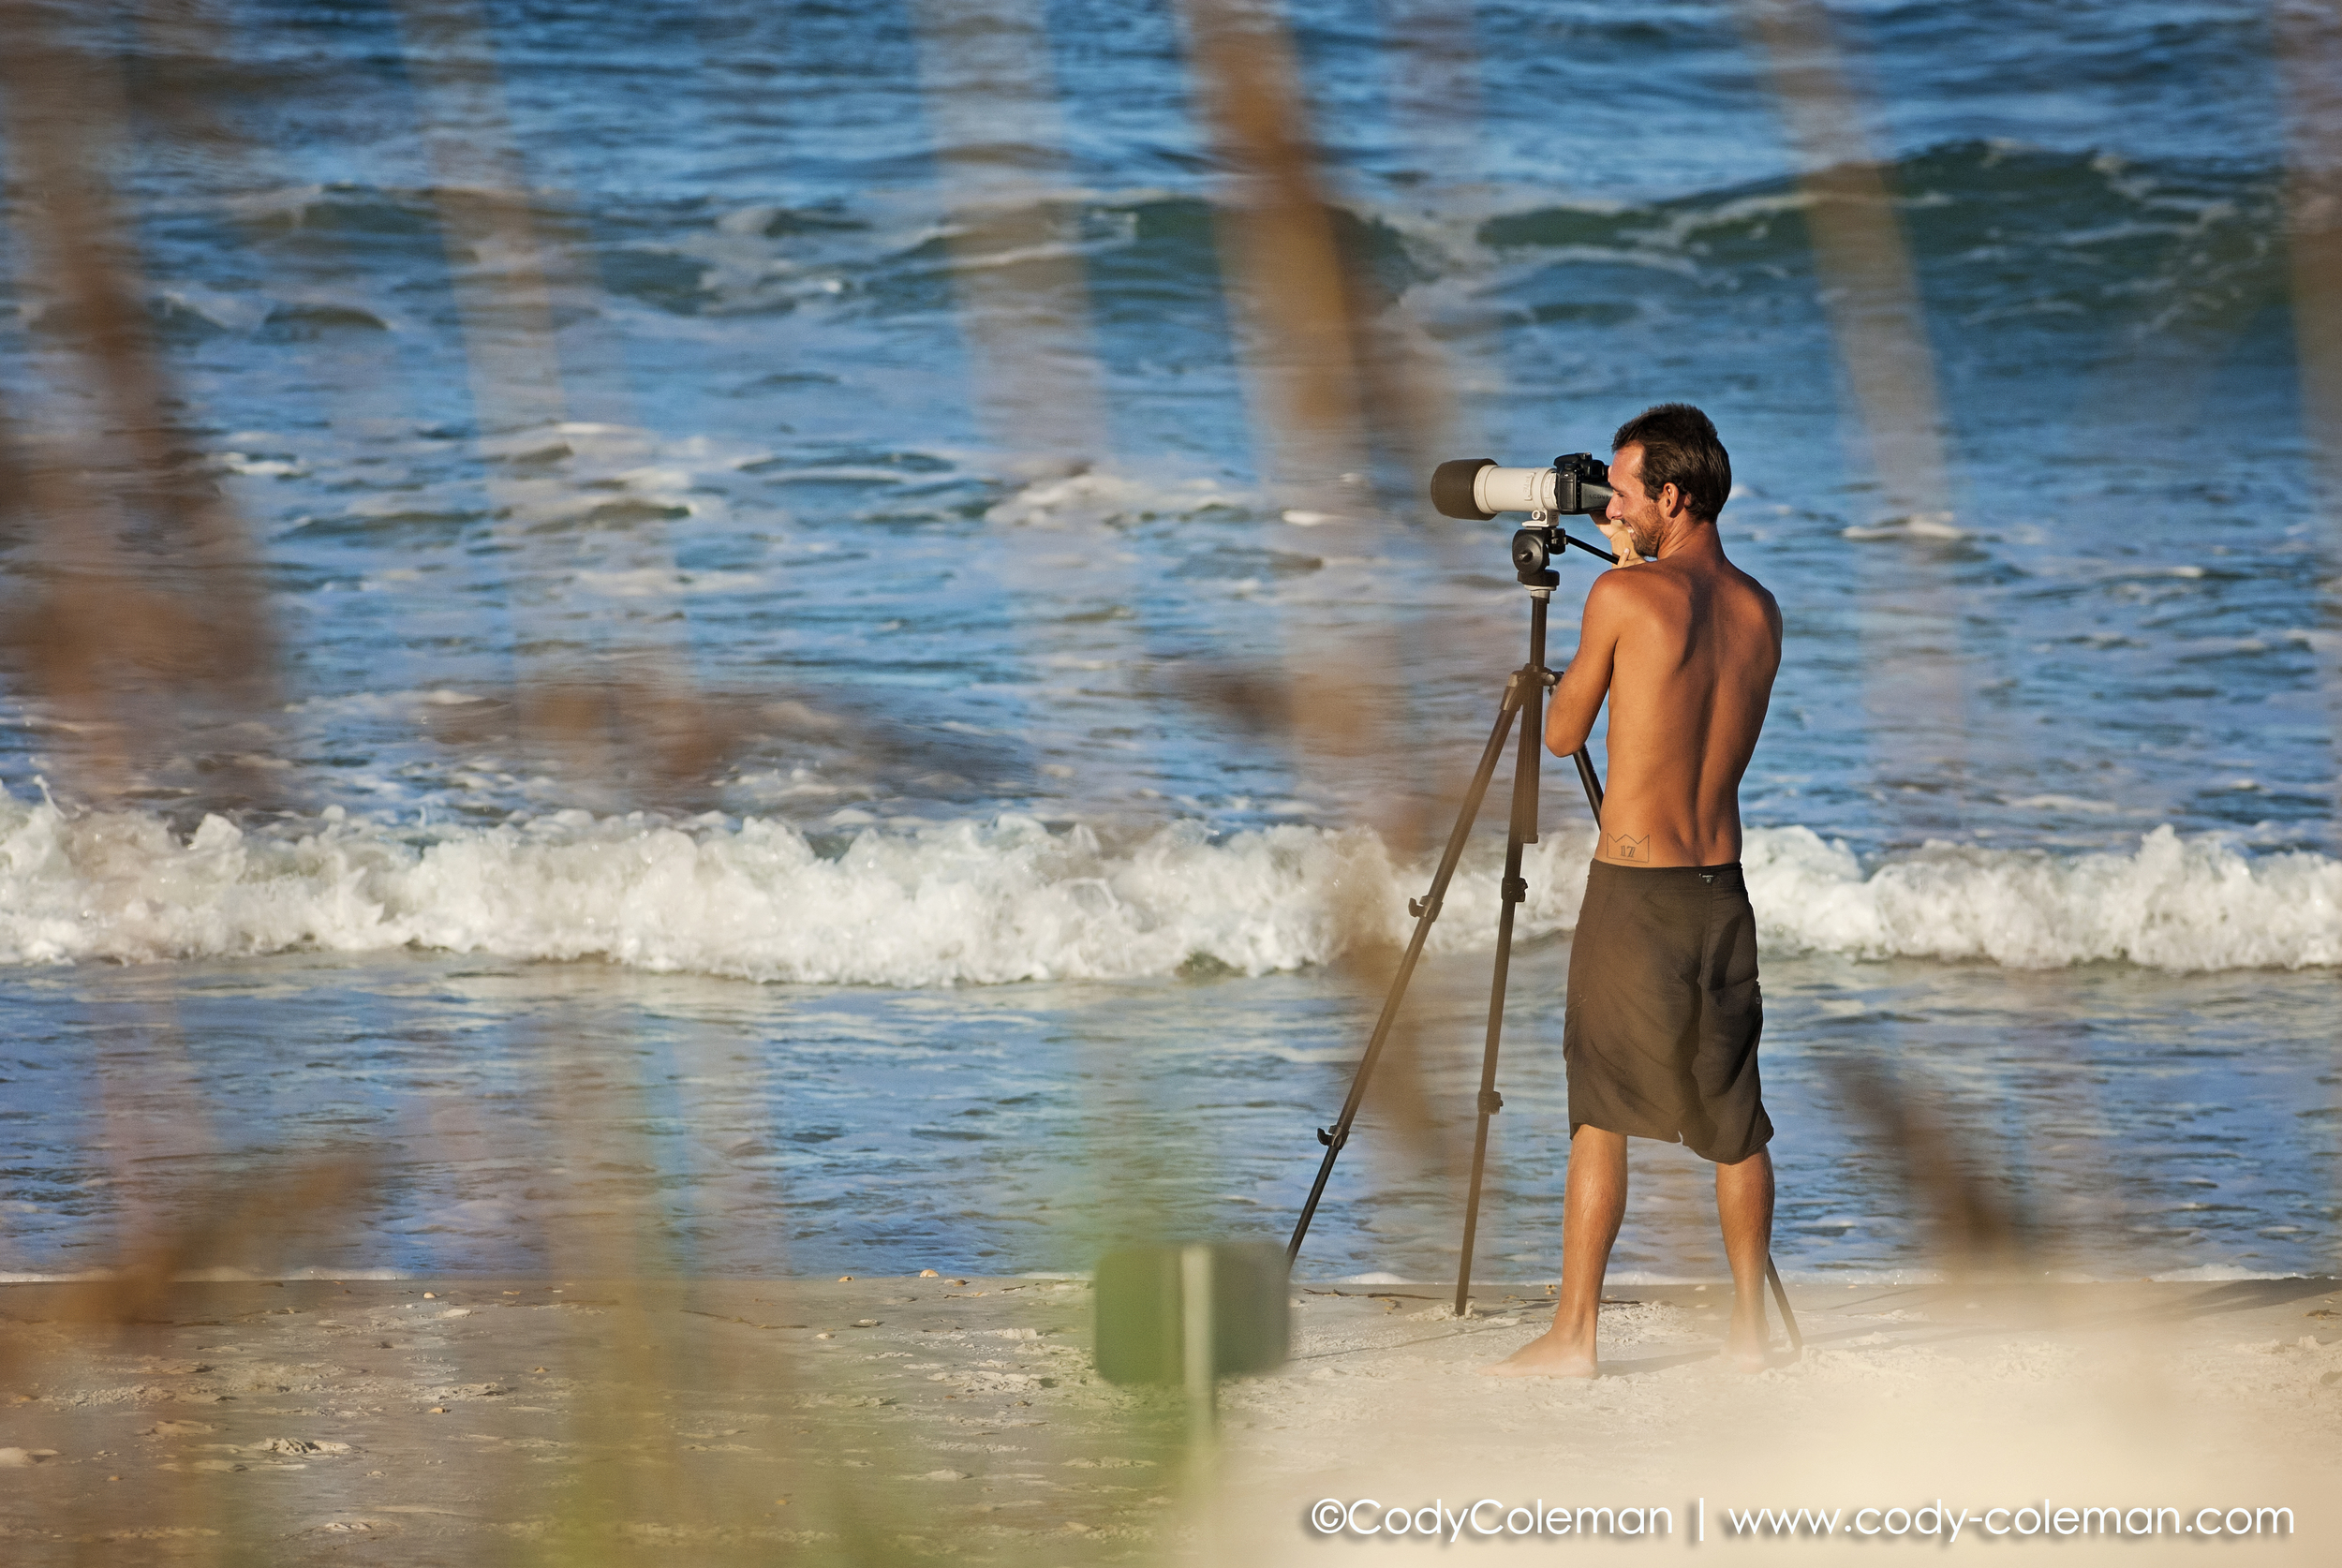 Beener doing his thing. Look out on the Surf-Staiton.com for a little video from tonight by Beener.